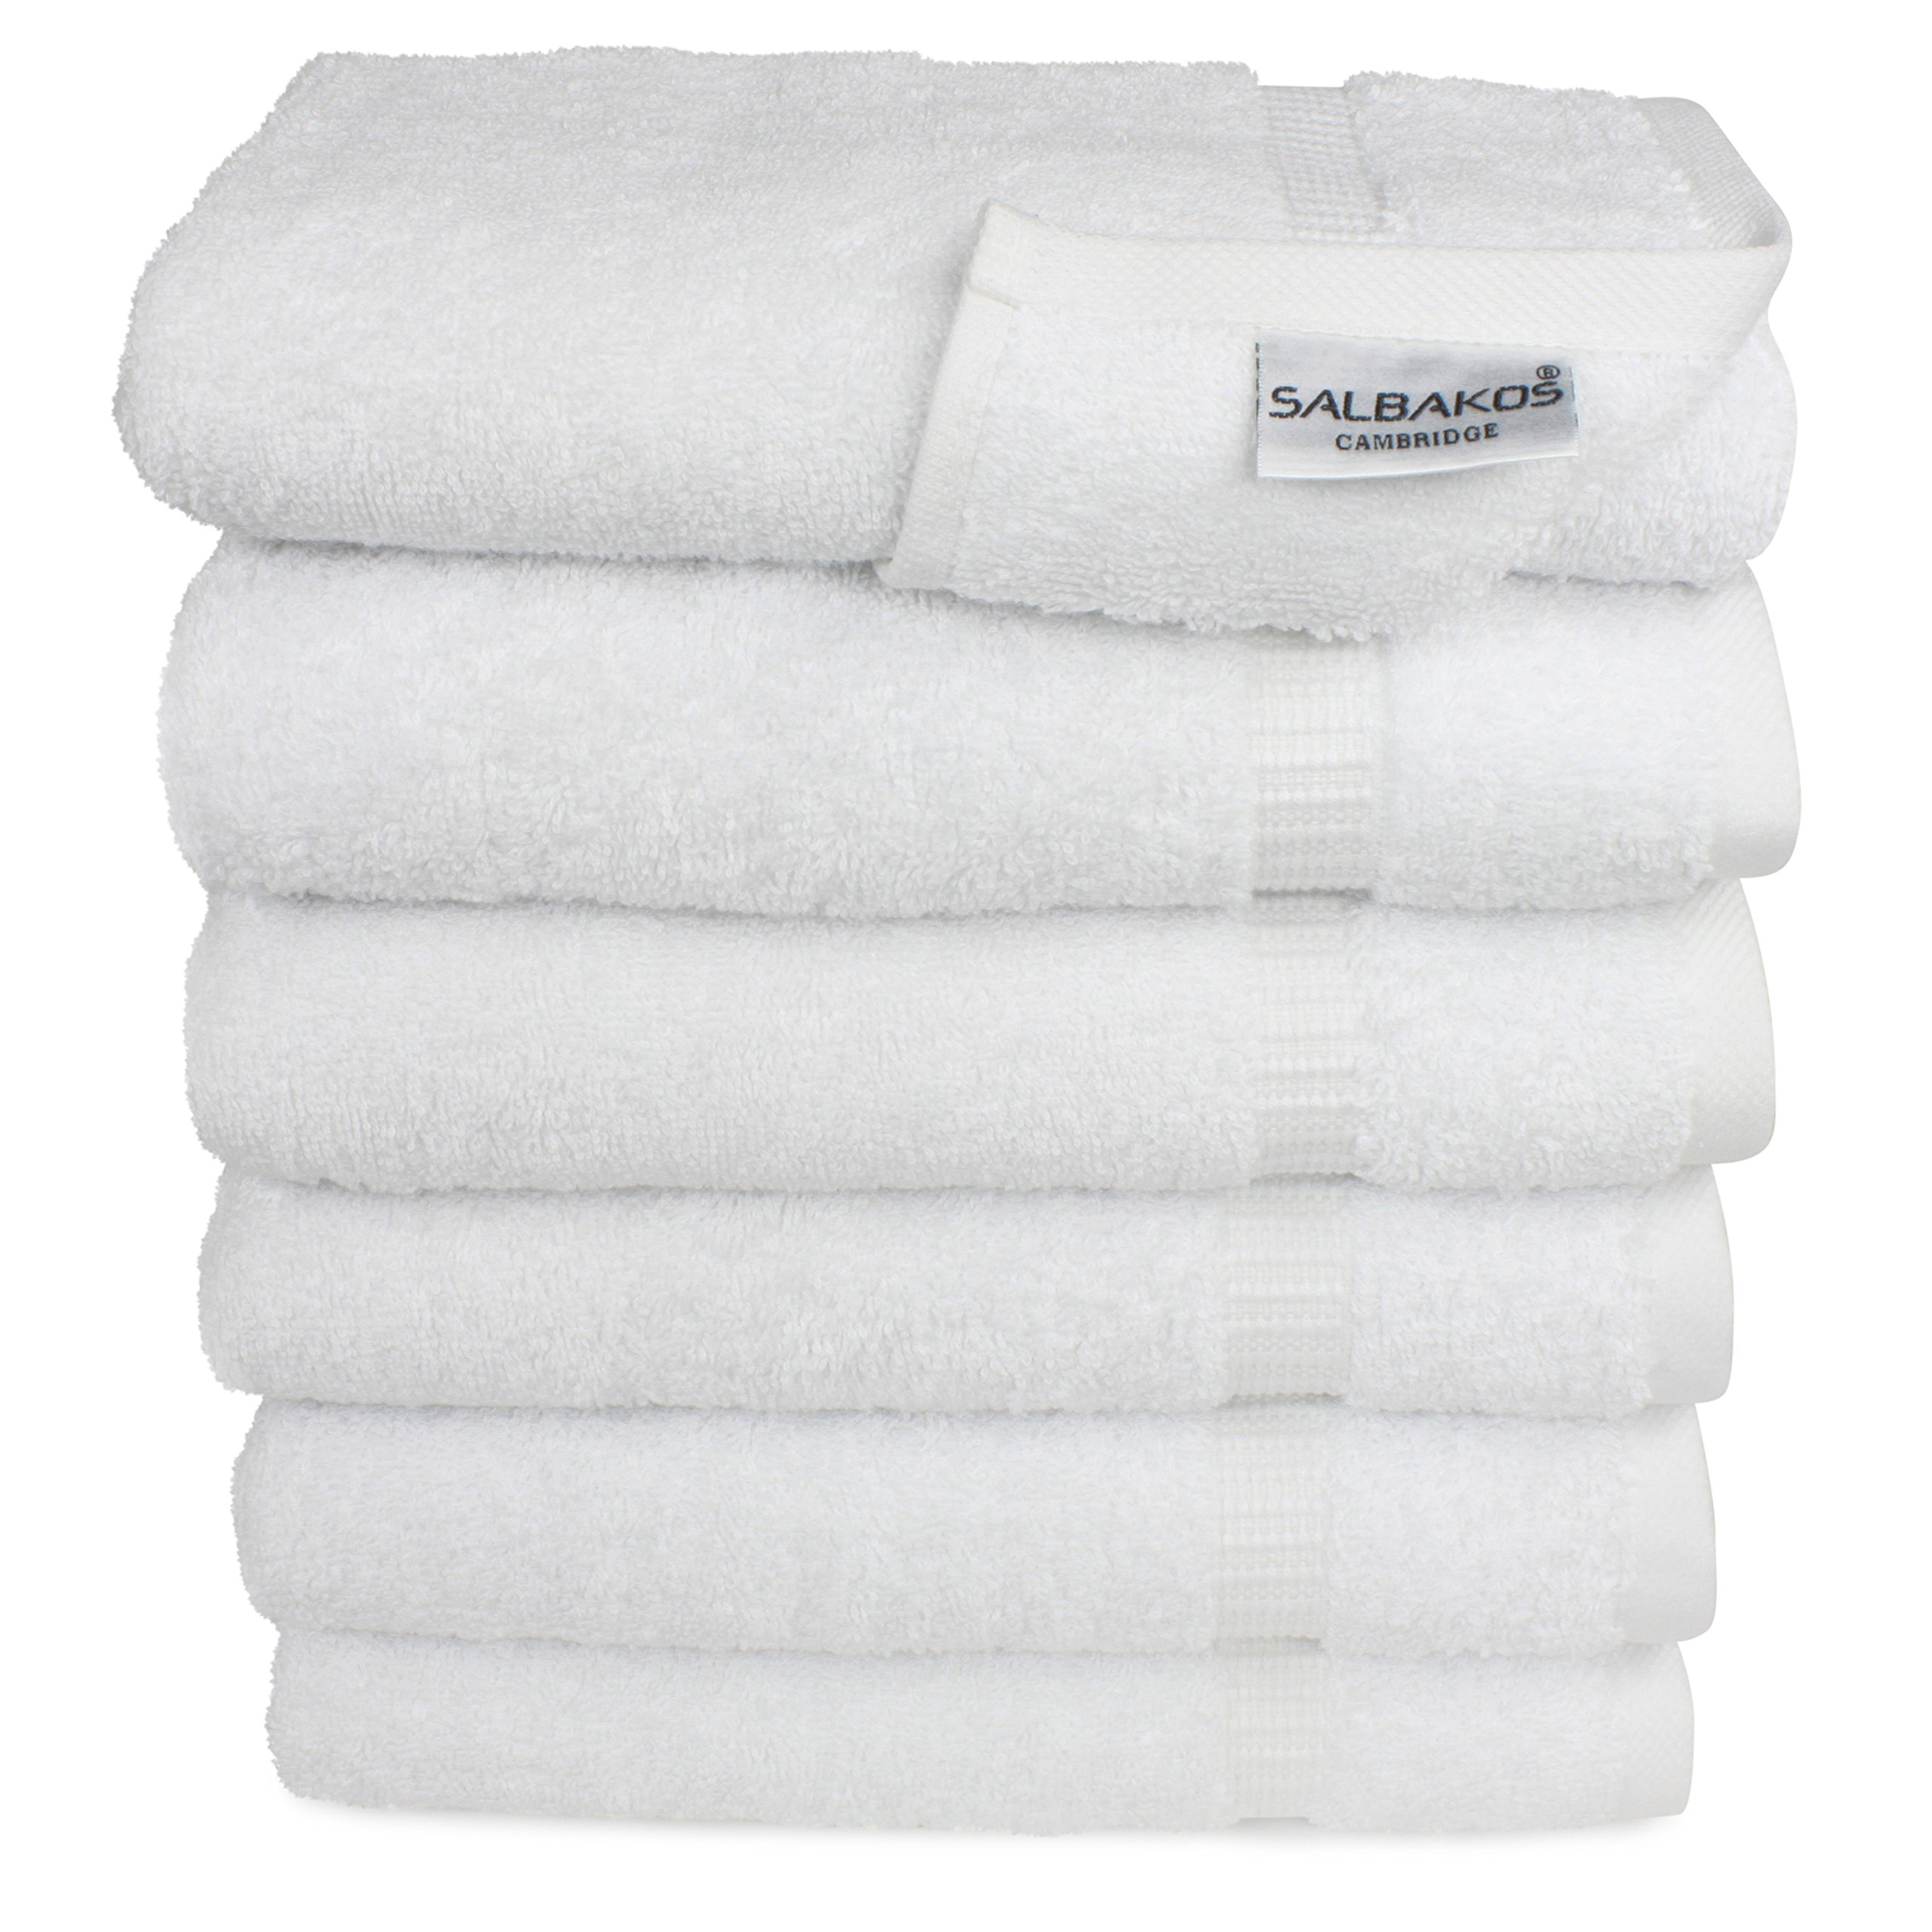 SALBAKOS Hand Towels for Bathroom, White Cotton, 6 Bulk Pack, 100 Percent Genuine Turkish Cotton, Luxury Hotel and Spa Quality, 700gsm OEKO-TEX Organic Eco-Friendly, (White) by SALBAKOS (Image #1)